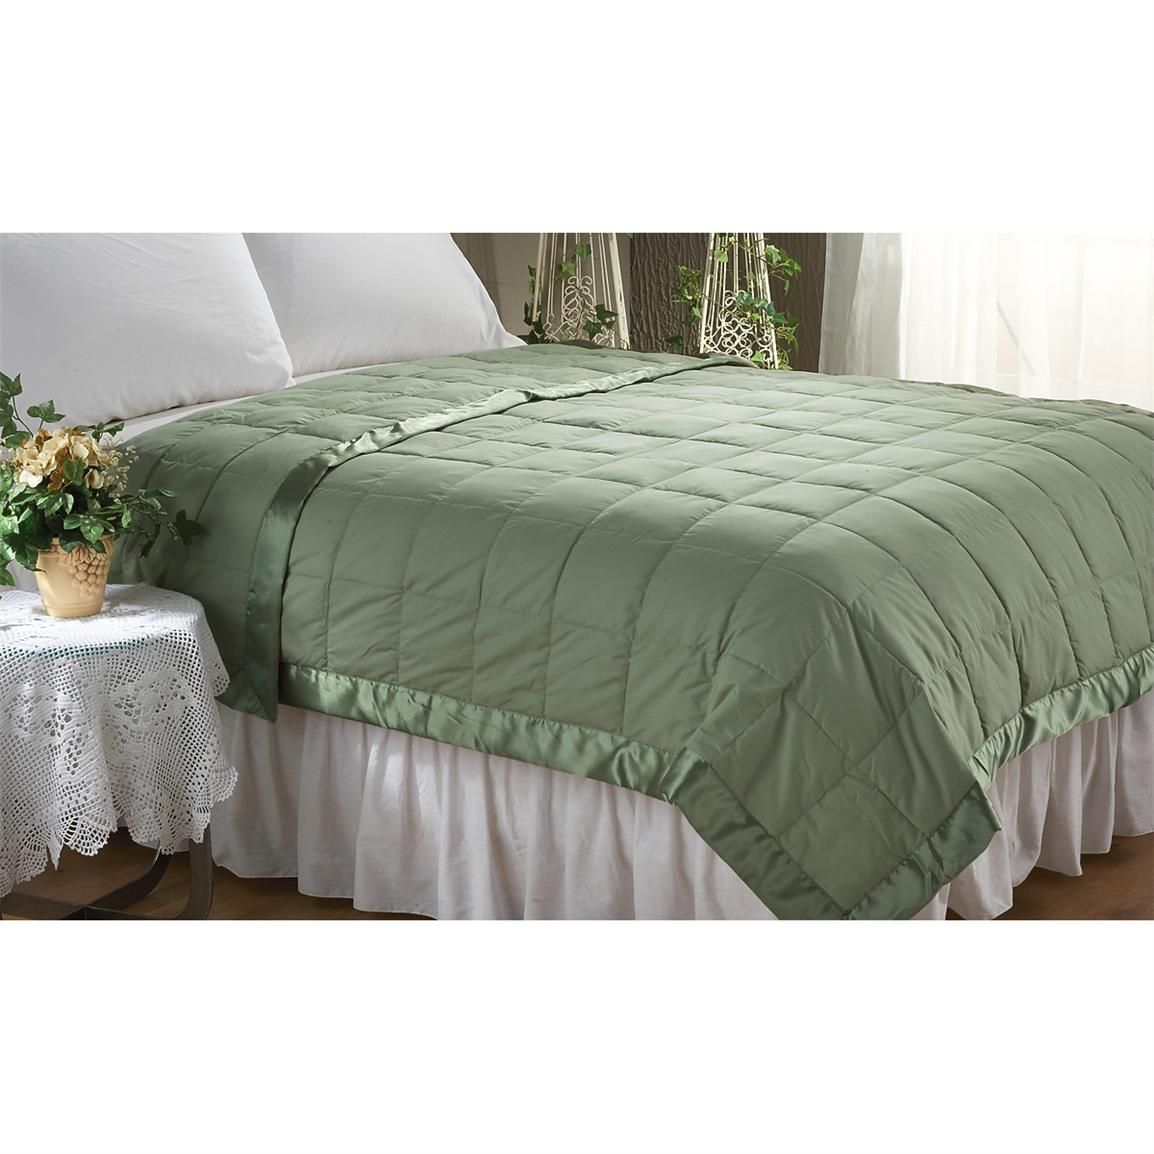 CASTLECREEK™ Microfiber Down and Feather Blanket is a warm winner, PRICED LESS!